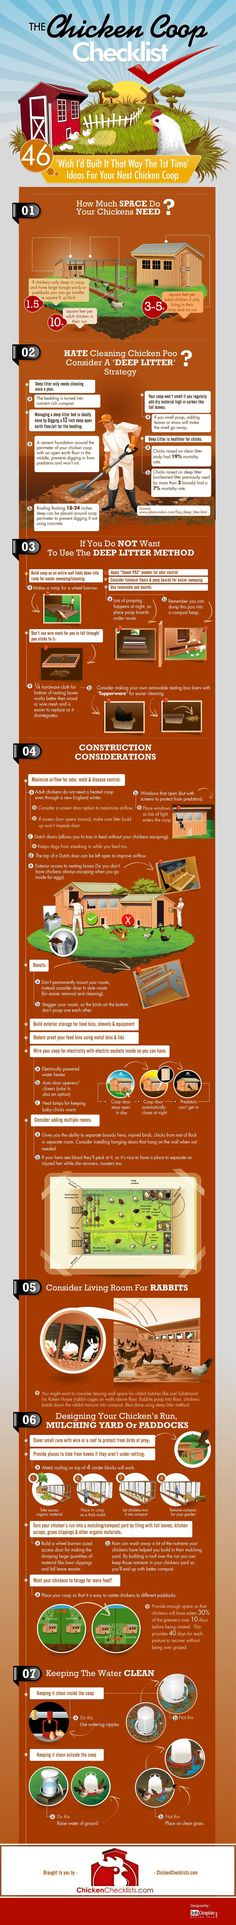 Building a Chicken Coop You guys. Heres the Chicken Coop Checklist to end all Chicken Coop Checklists. via Jane @ Mom with a PREP Building a chicken coop does not have to be tricky nor does it have to set you back a ton of scratch. Best Chicken Coop, Backyard Chicken Coops, Chicken Coop Plans, Building A Chicken Coop, Chicken Barn, Chicken Life, Chicken Ideas, Chicken Shop, Clean Chicken